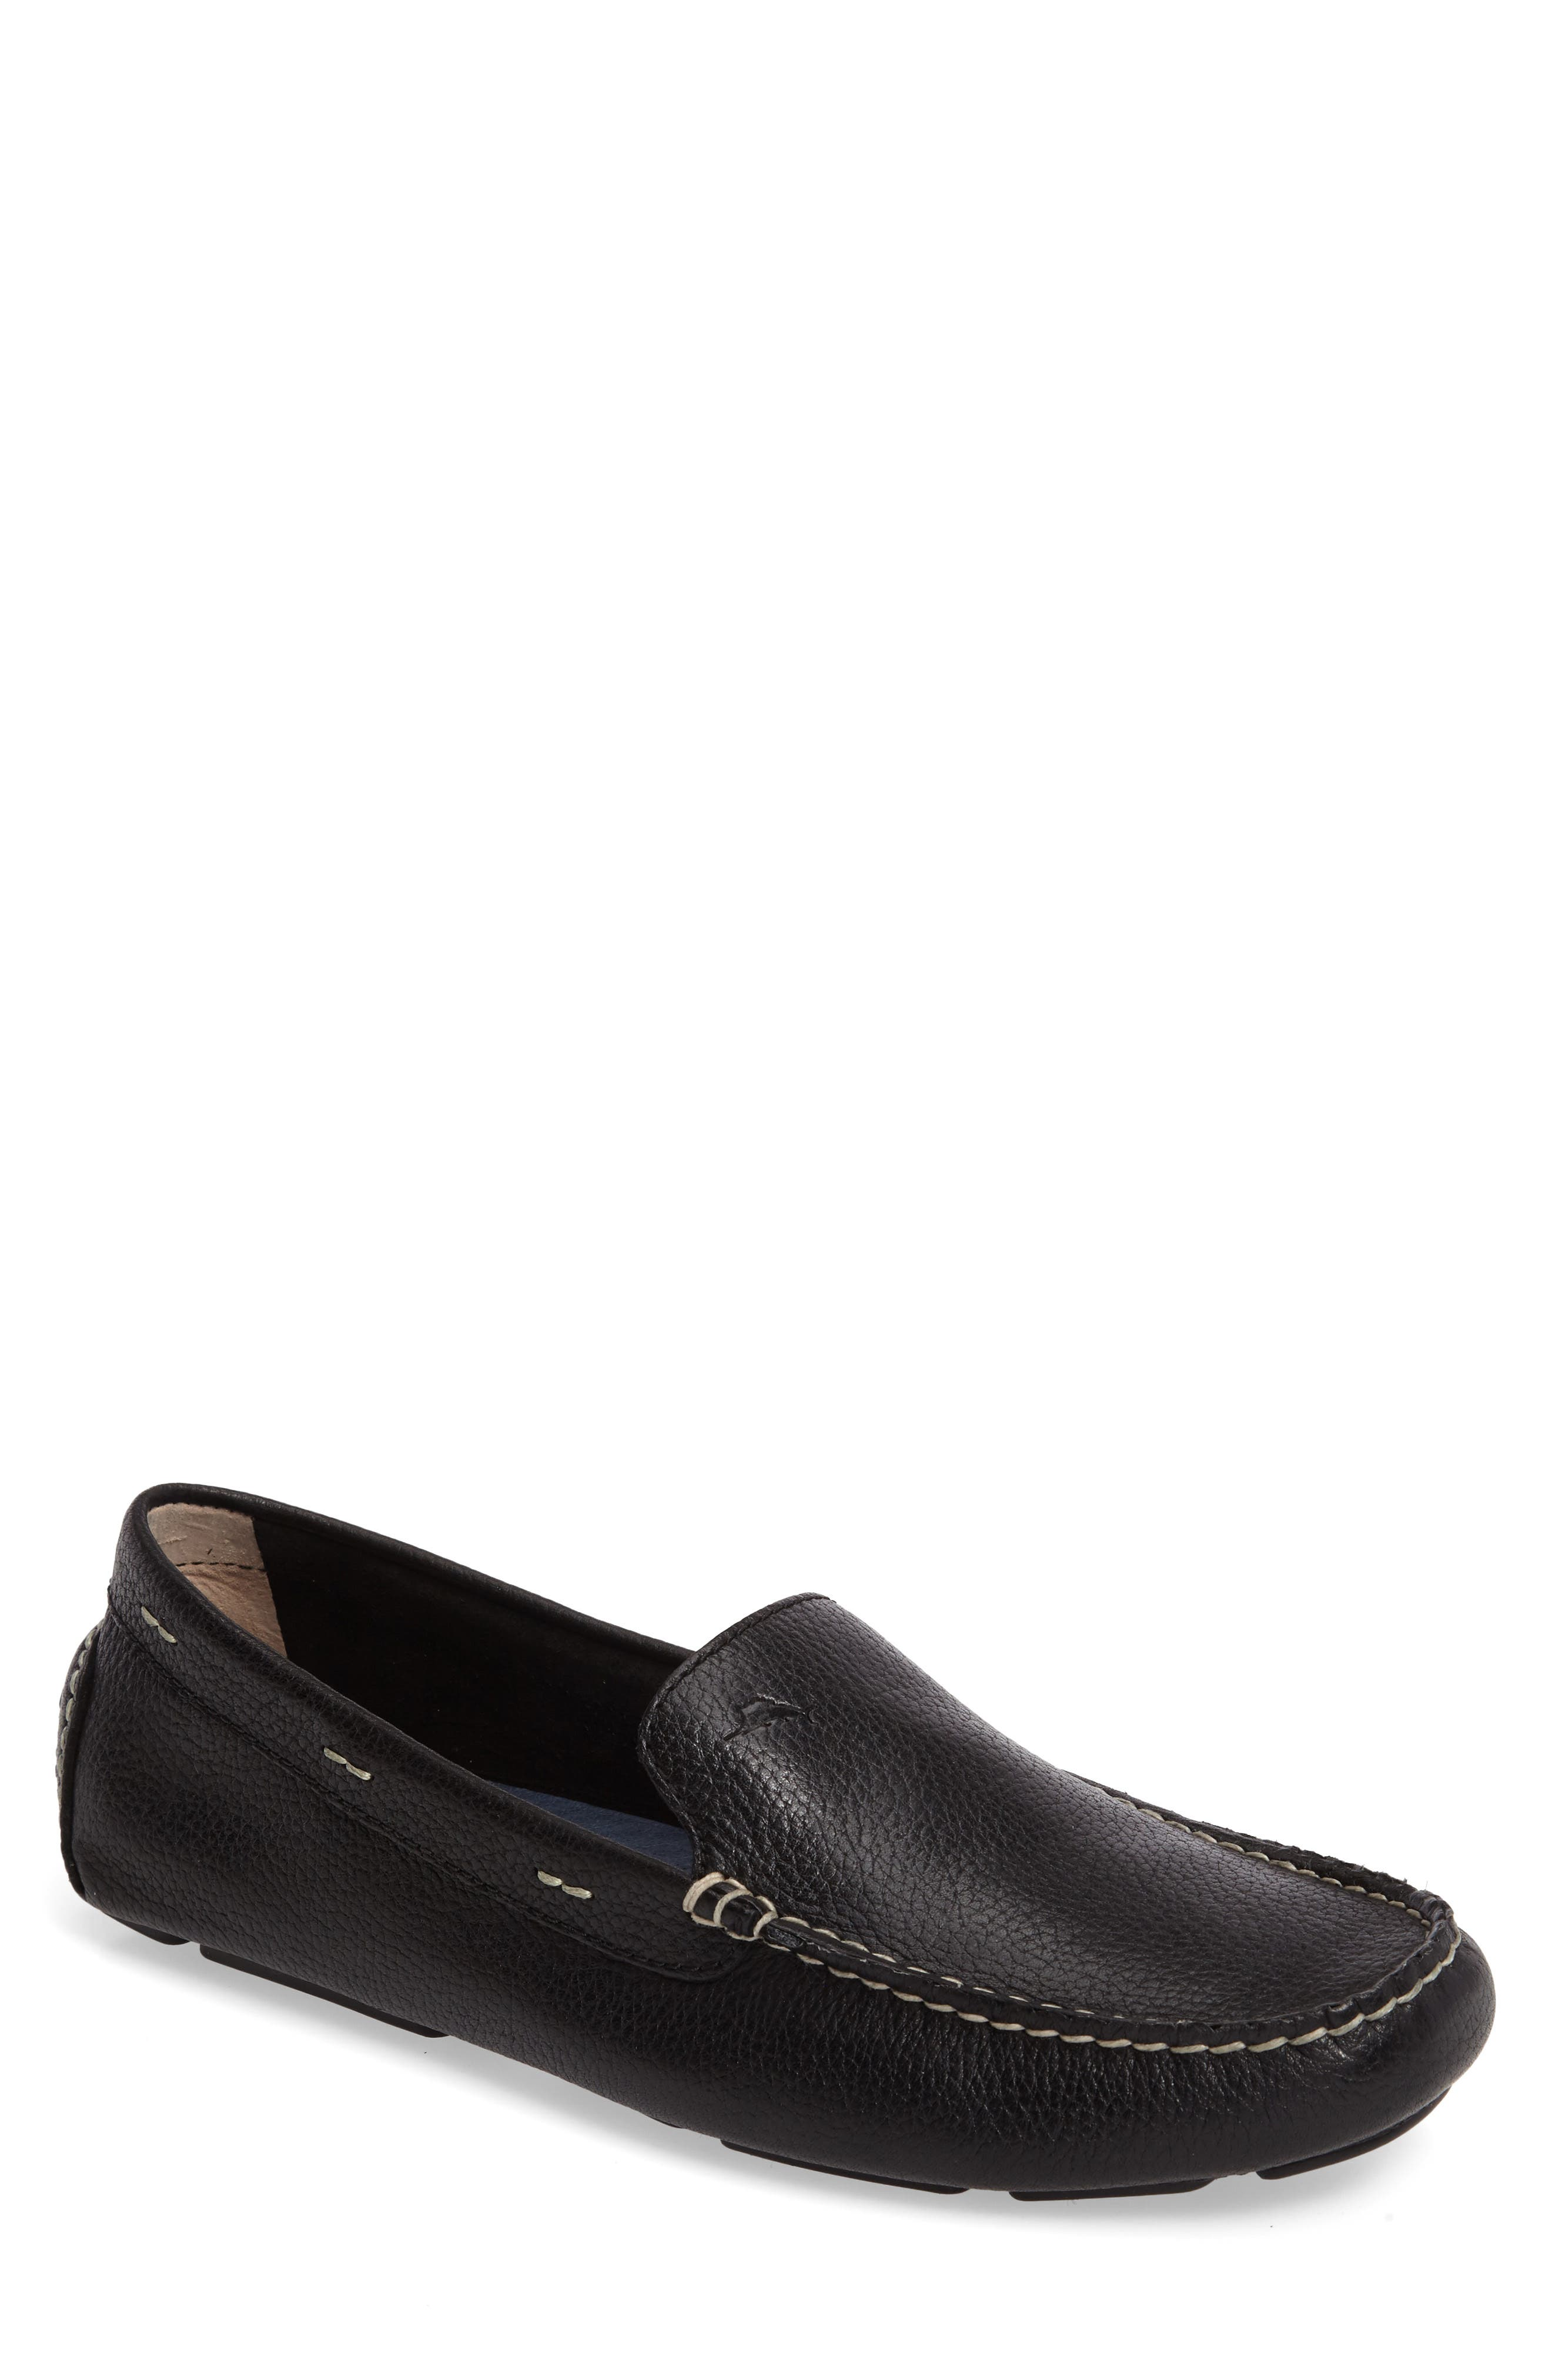 Pagota Driving Loafer,                             Main thumbnail 1, color,                             BLACK LEATHER